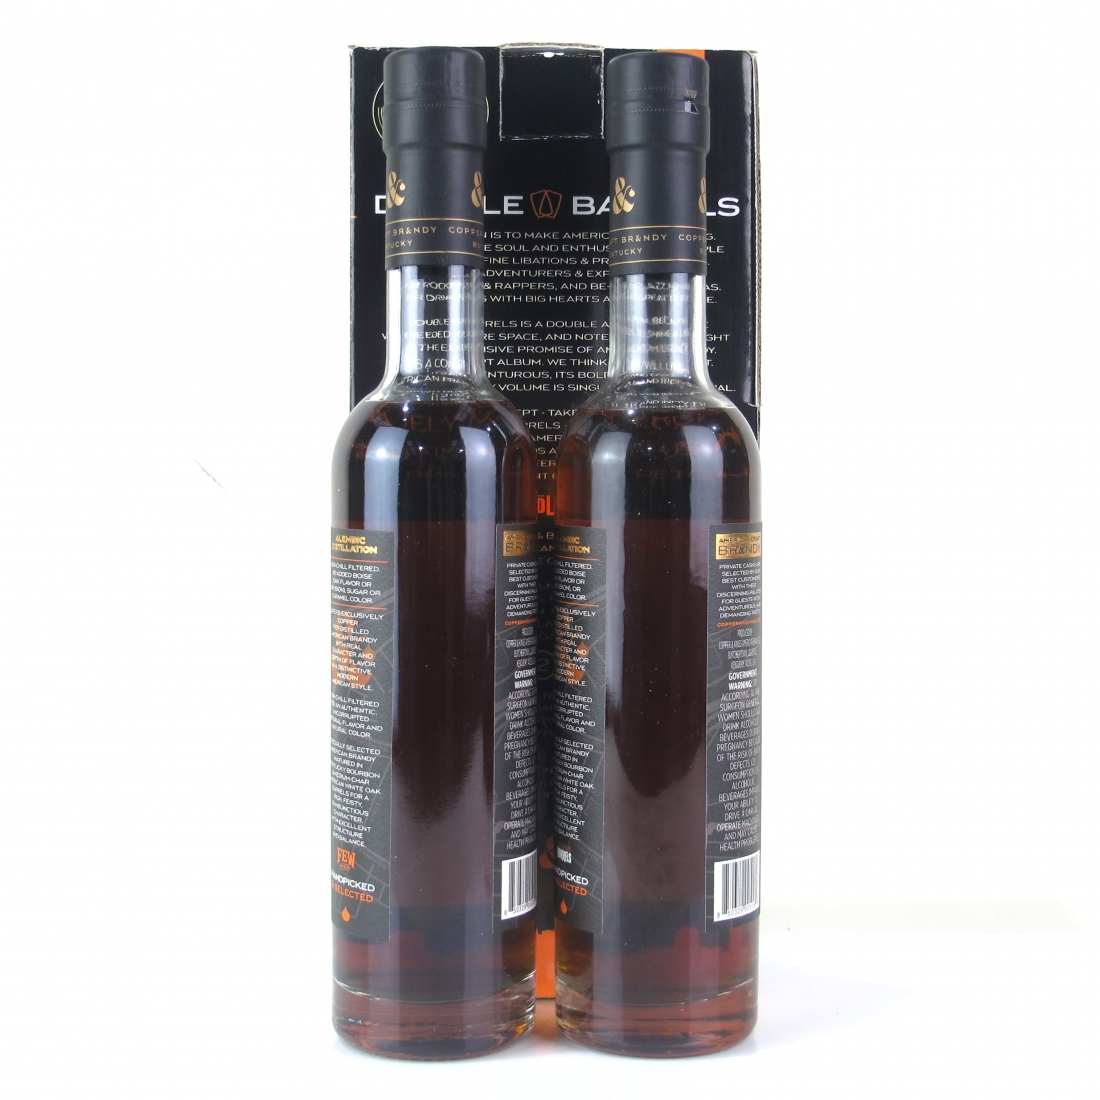 Copper and Kings Double Barrels American Brandy 2 x 37.5cl